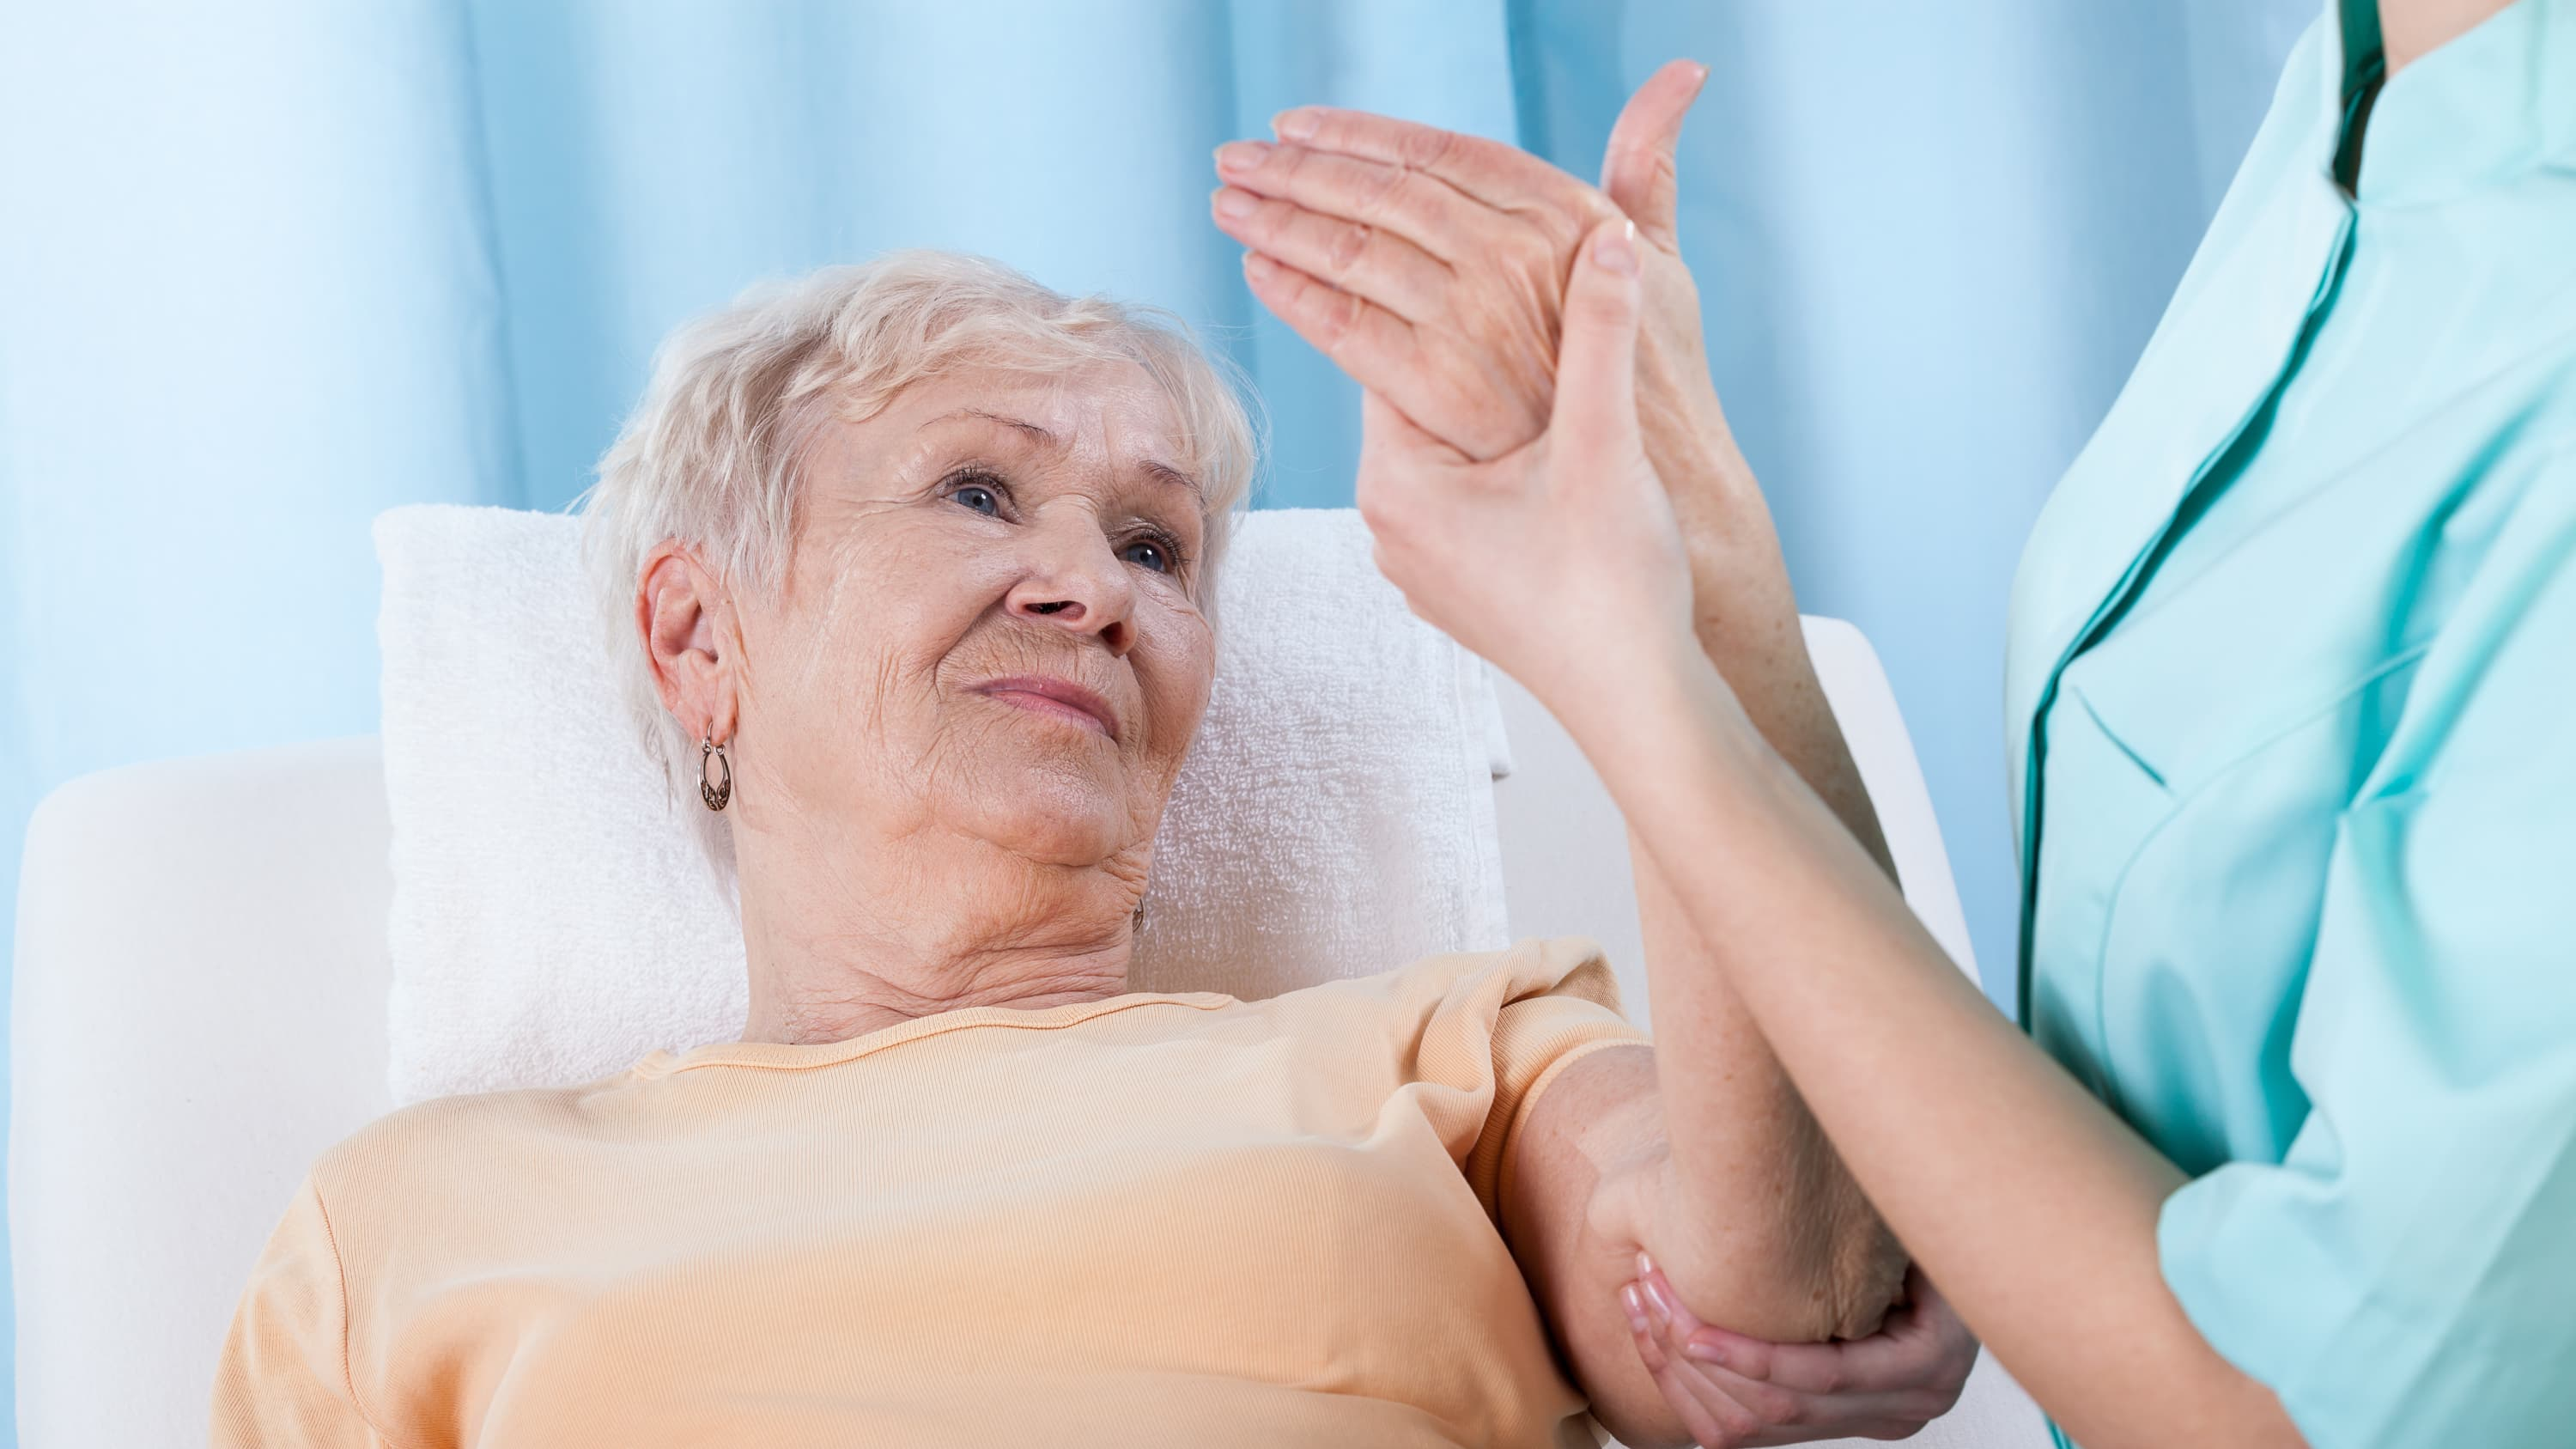 An older woman is checked for osteoporosis.